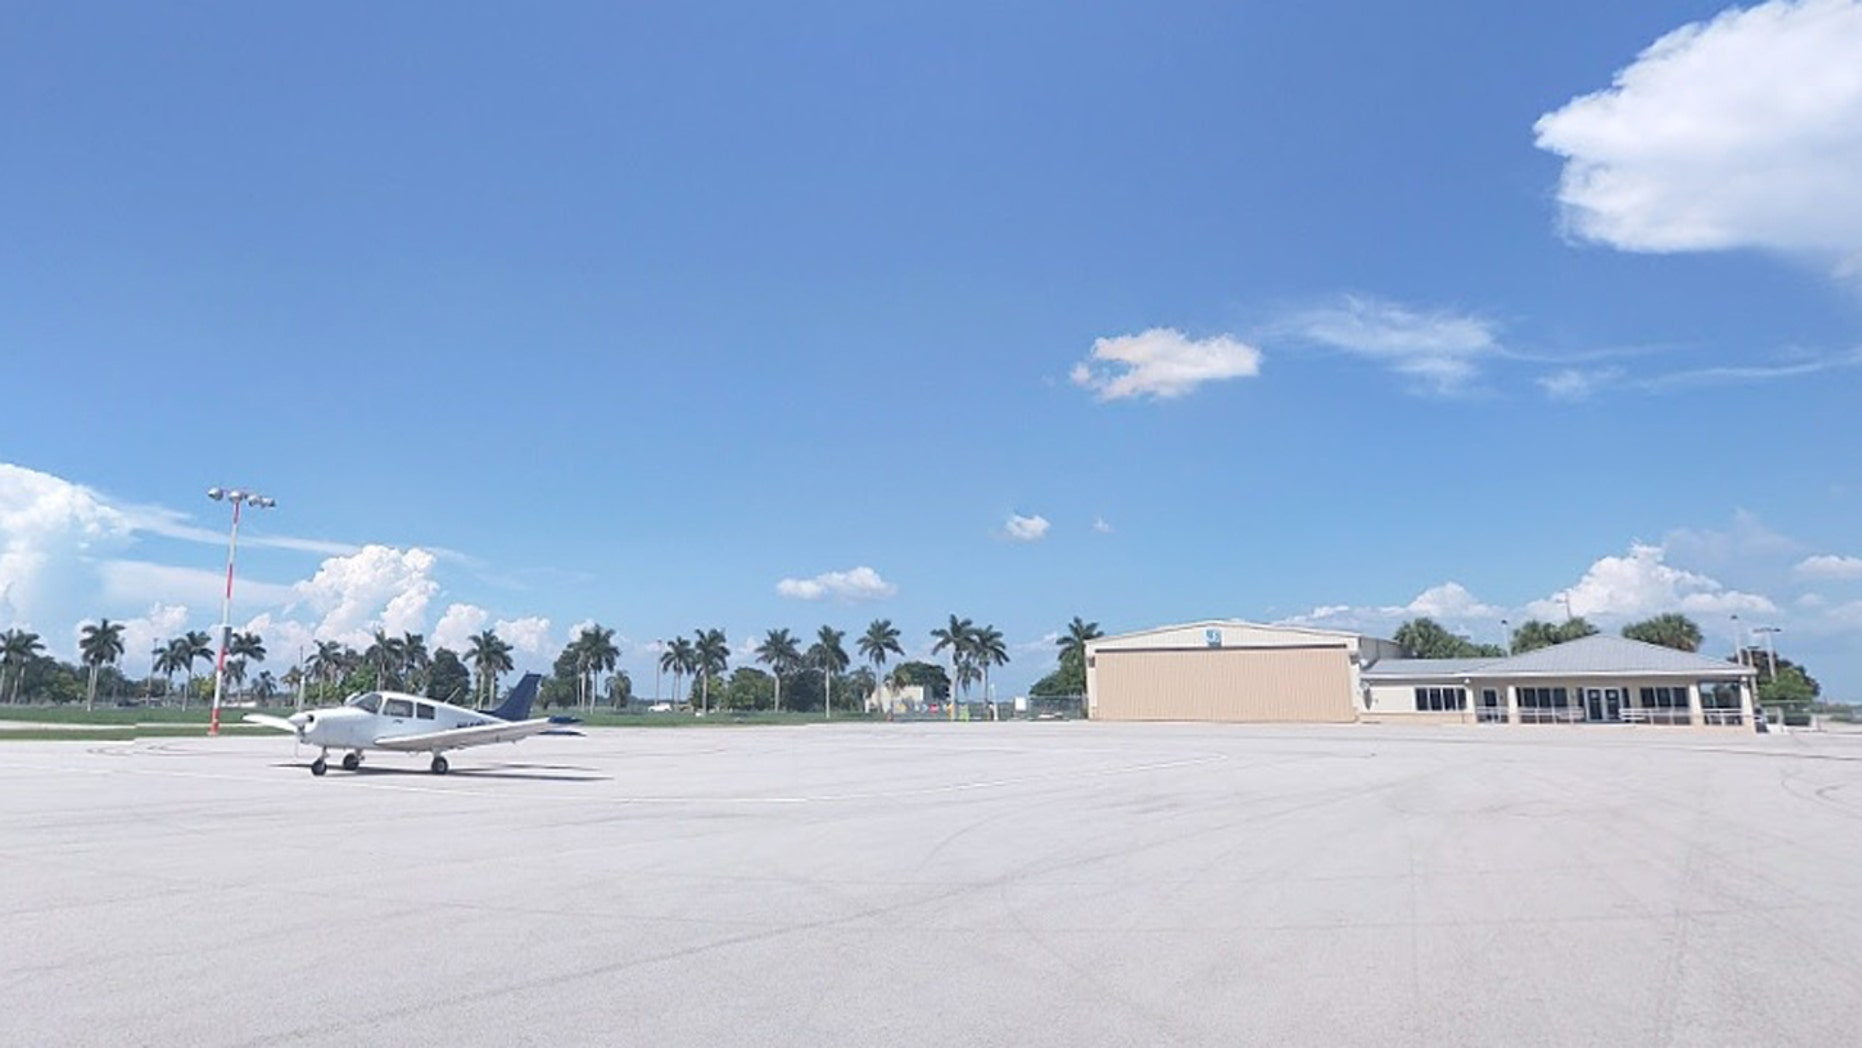 Pahokee Airport, near the scene of the fatal small-plane crash. The aircraft pictured is not the one involved in the crash.